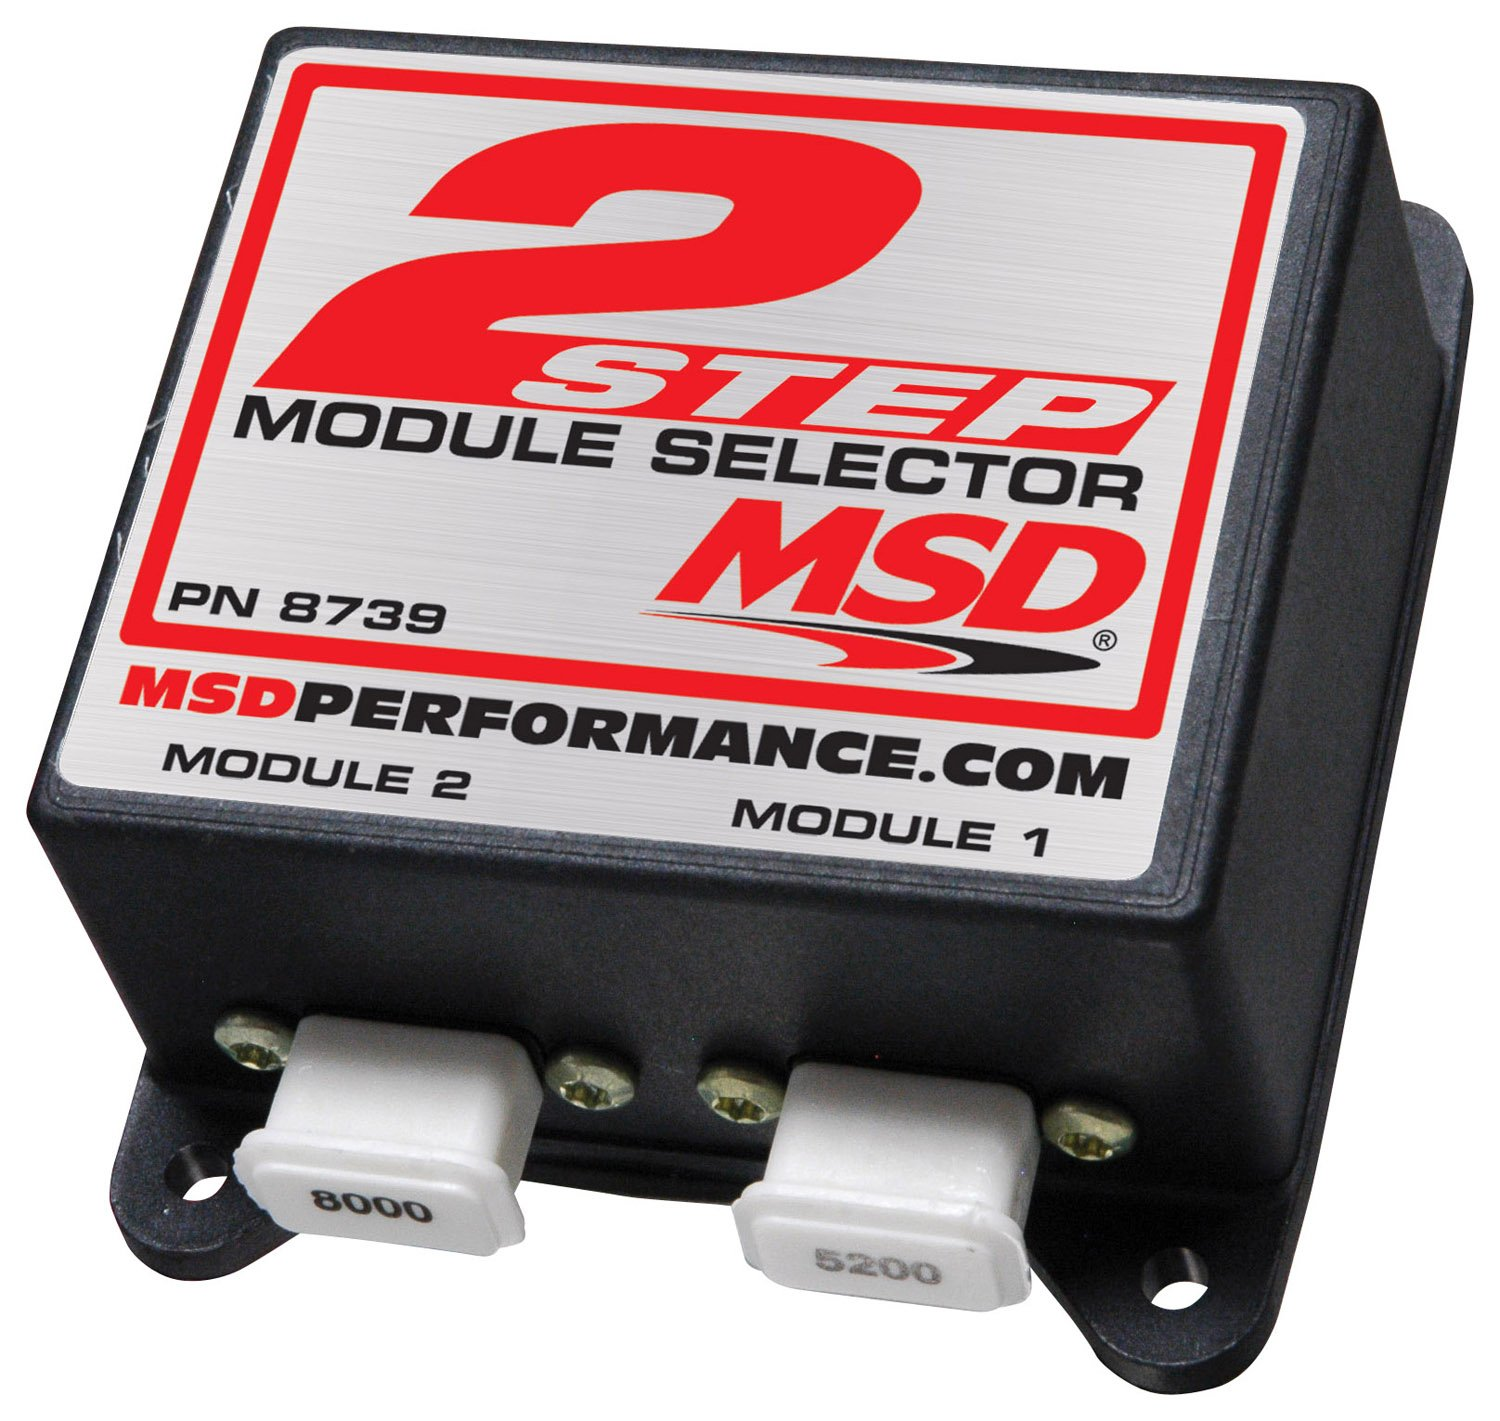 8739 - Two Step Module Selector Image